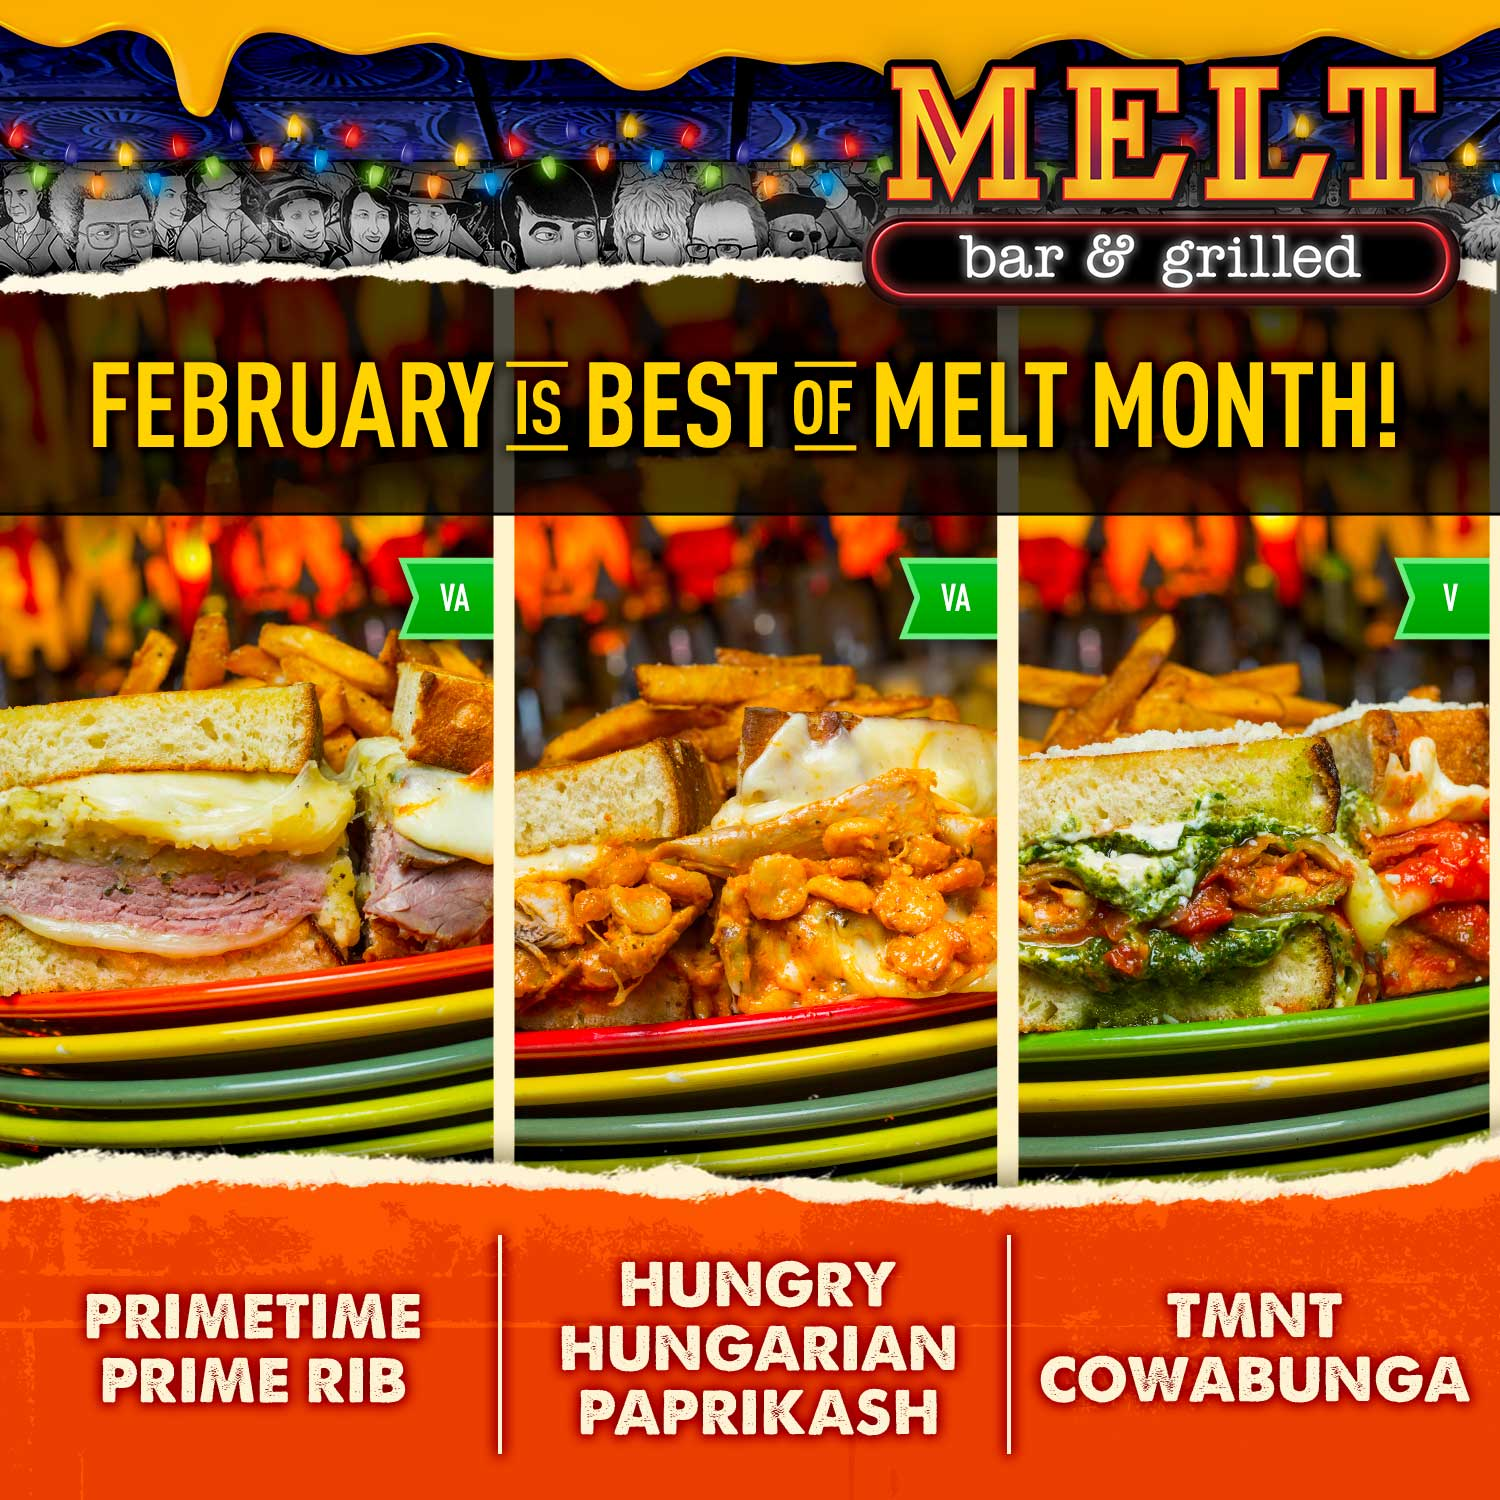 Best of Melt Month